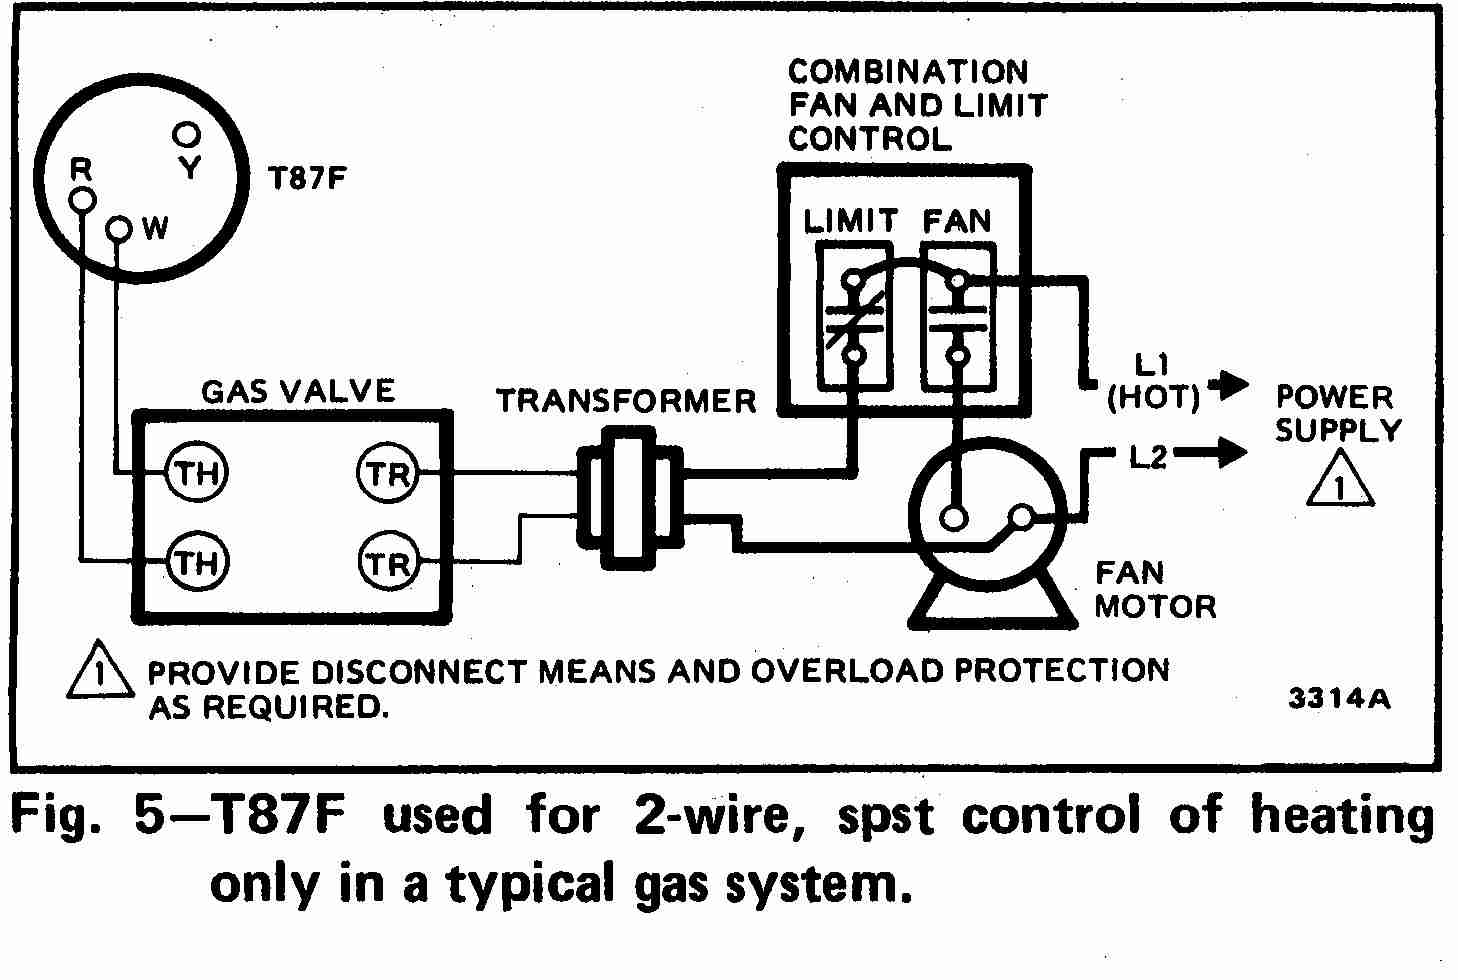 basic thermostat wiring to furnace wiring diagramroom thermostat wiring diagrams for hvac systemshoneywell t87f thermostat wiring diagram for 2 wire, spst